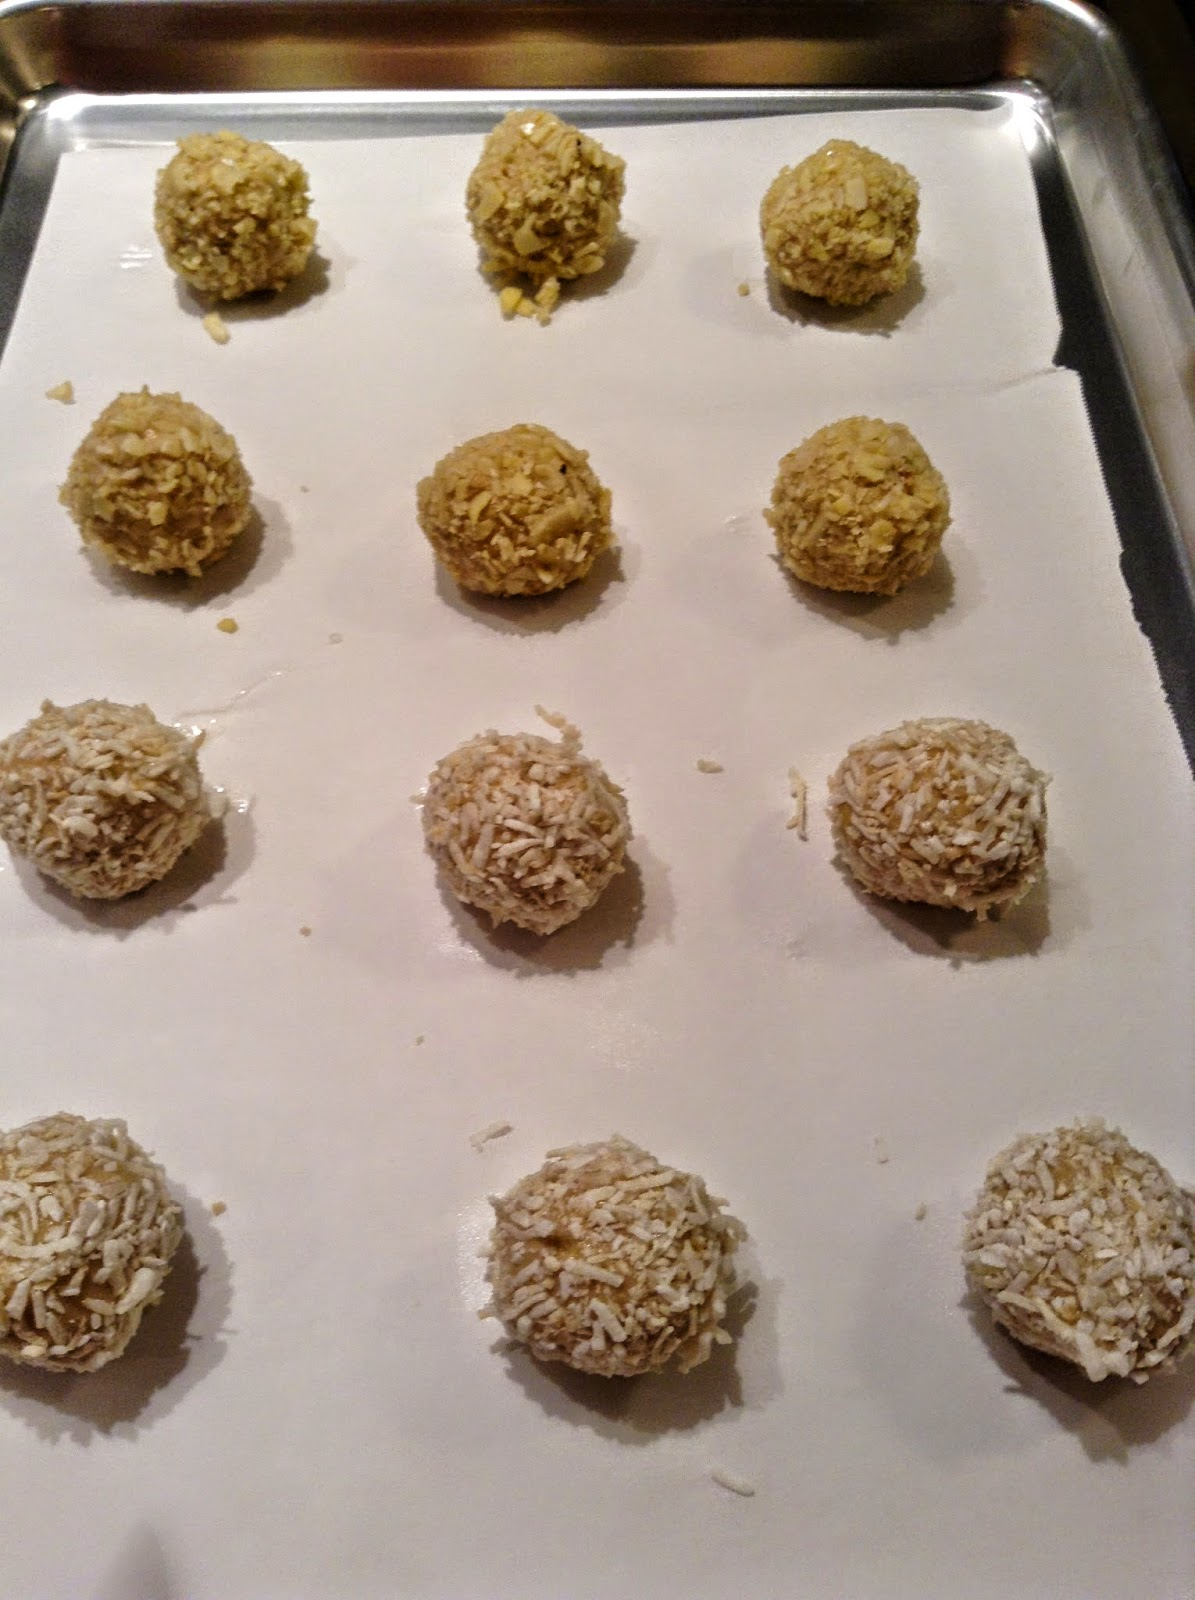 Thimble cookies ready to indent